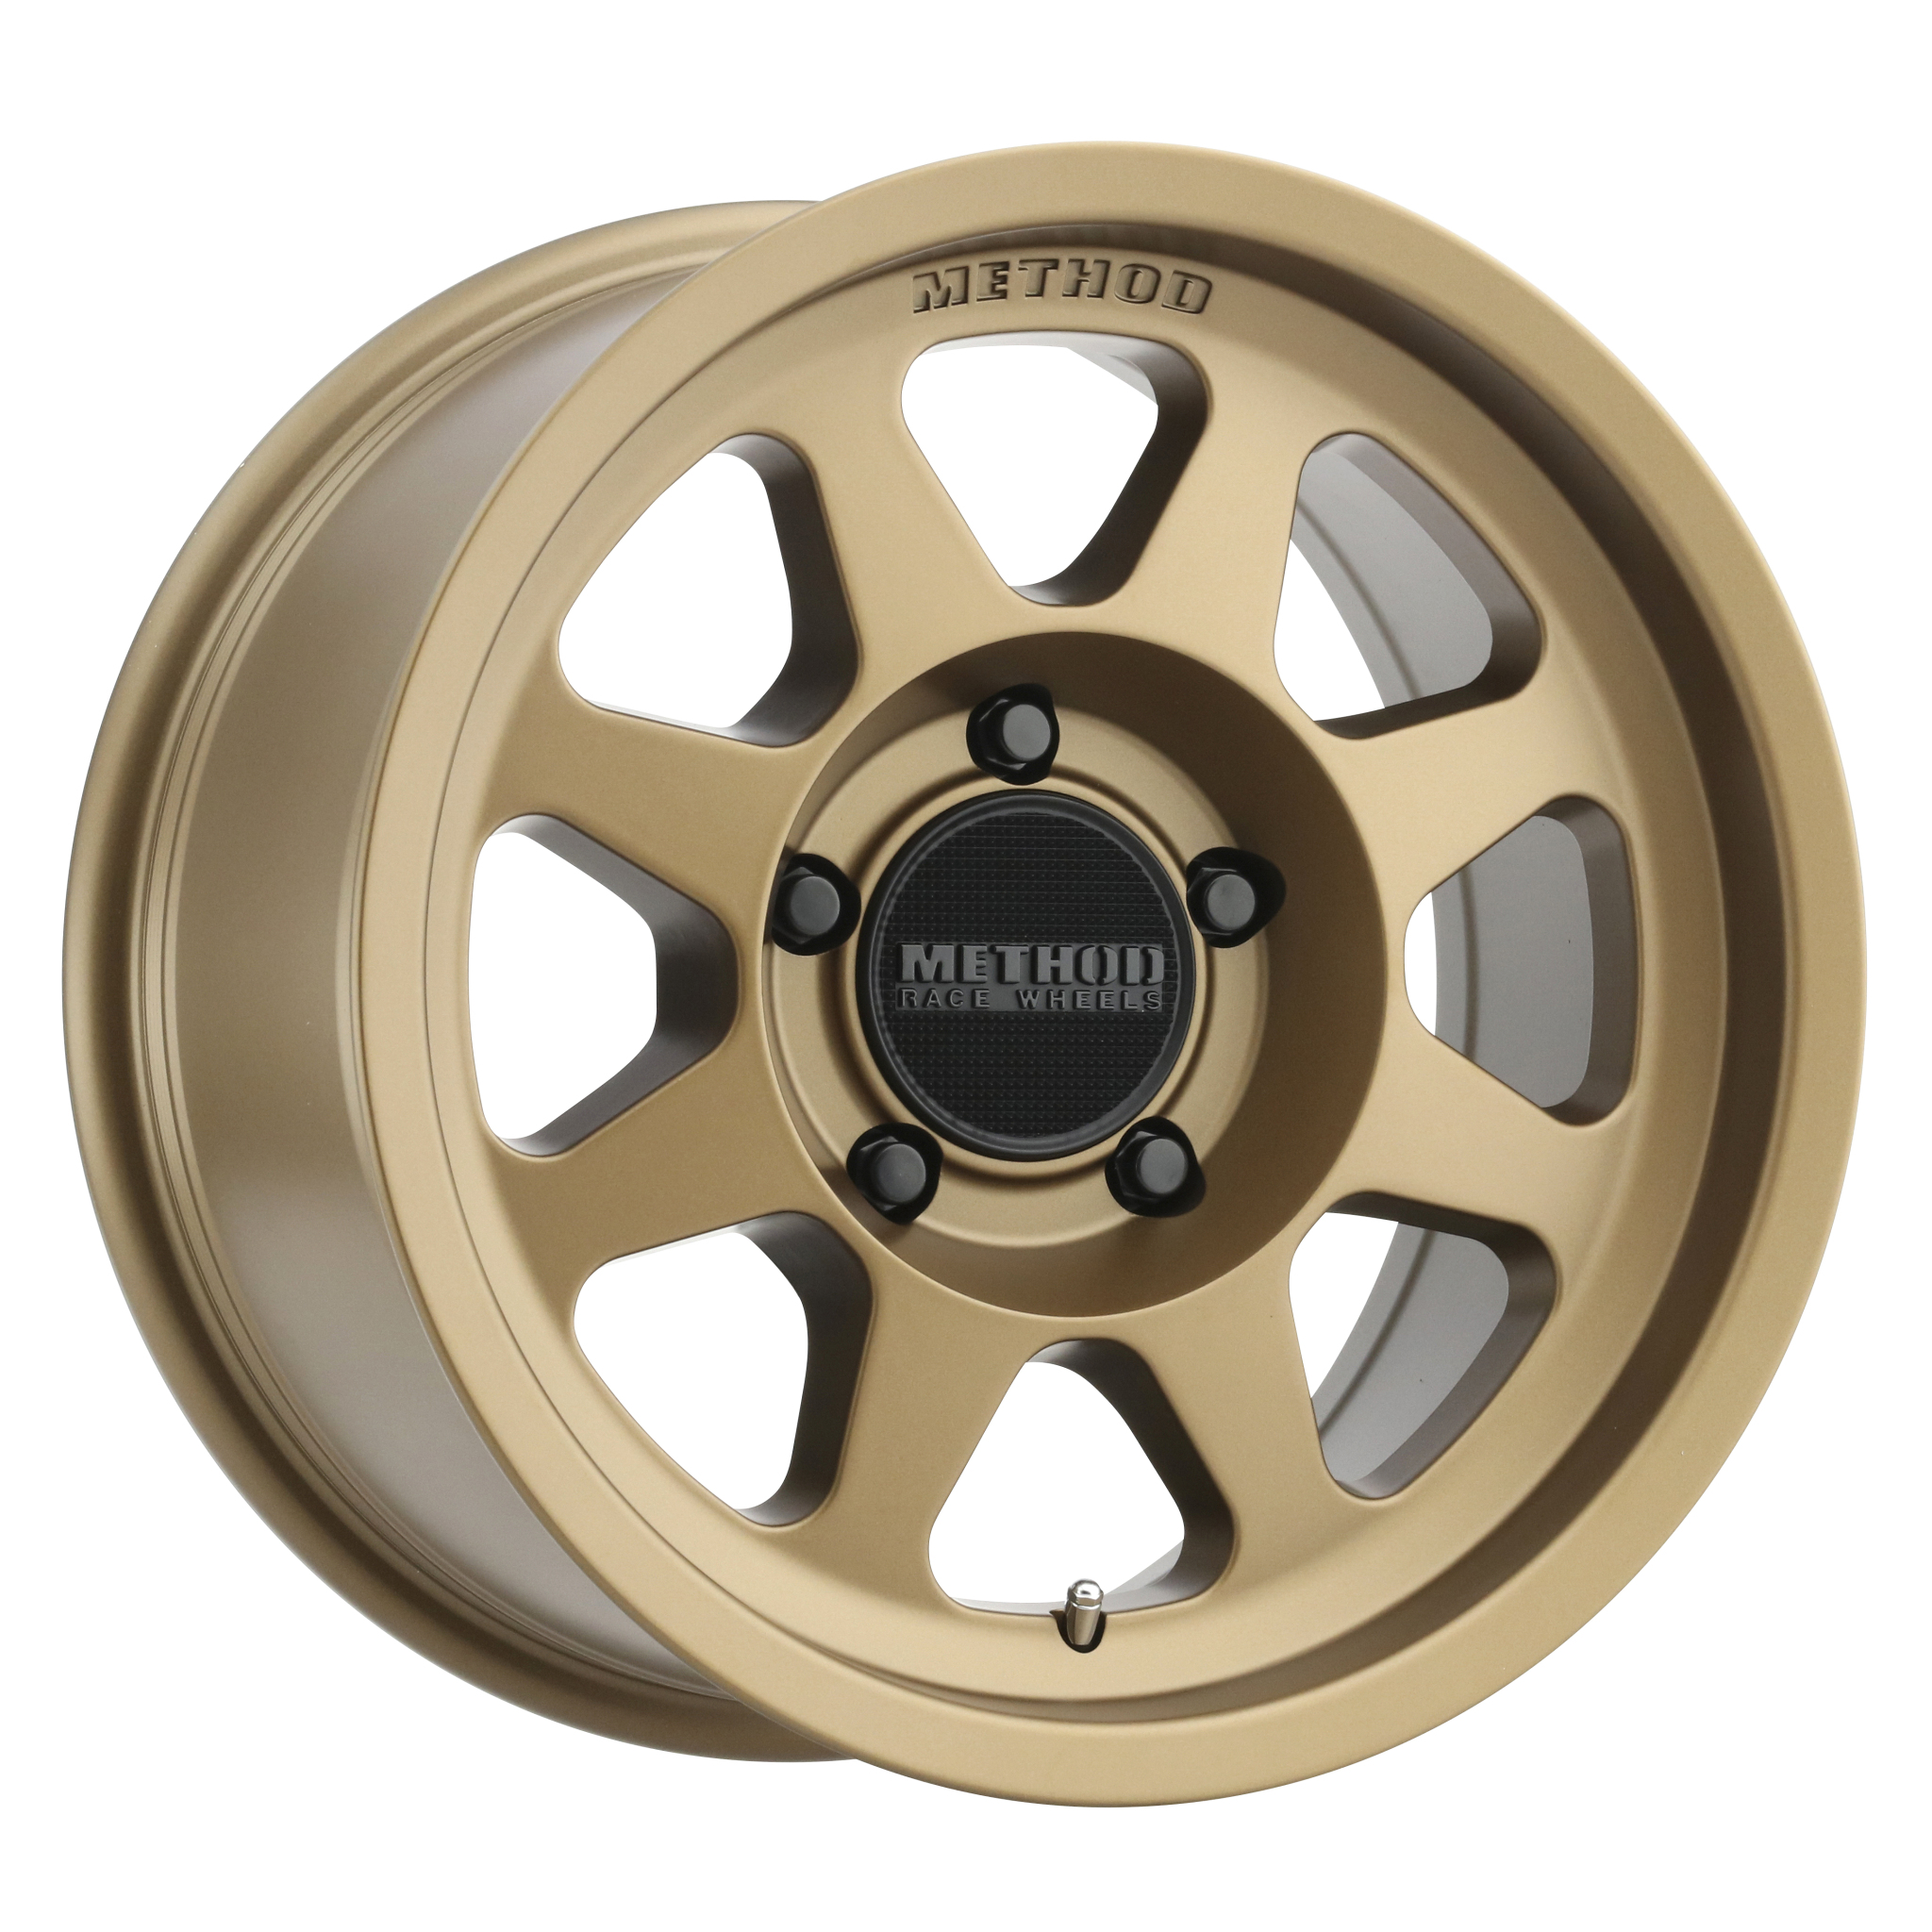 Method 701, 18x9, +25mm Offset, 5x150, 110.5mm Centerbore, Method Bronze